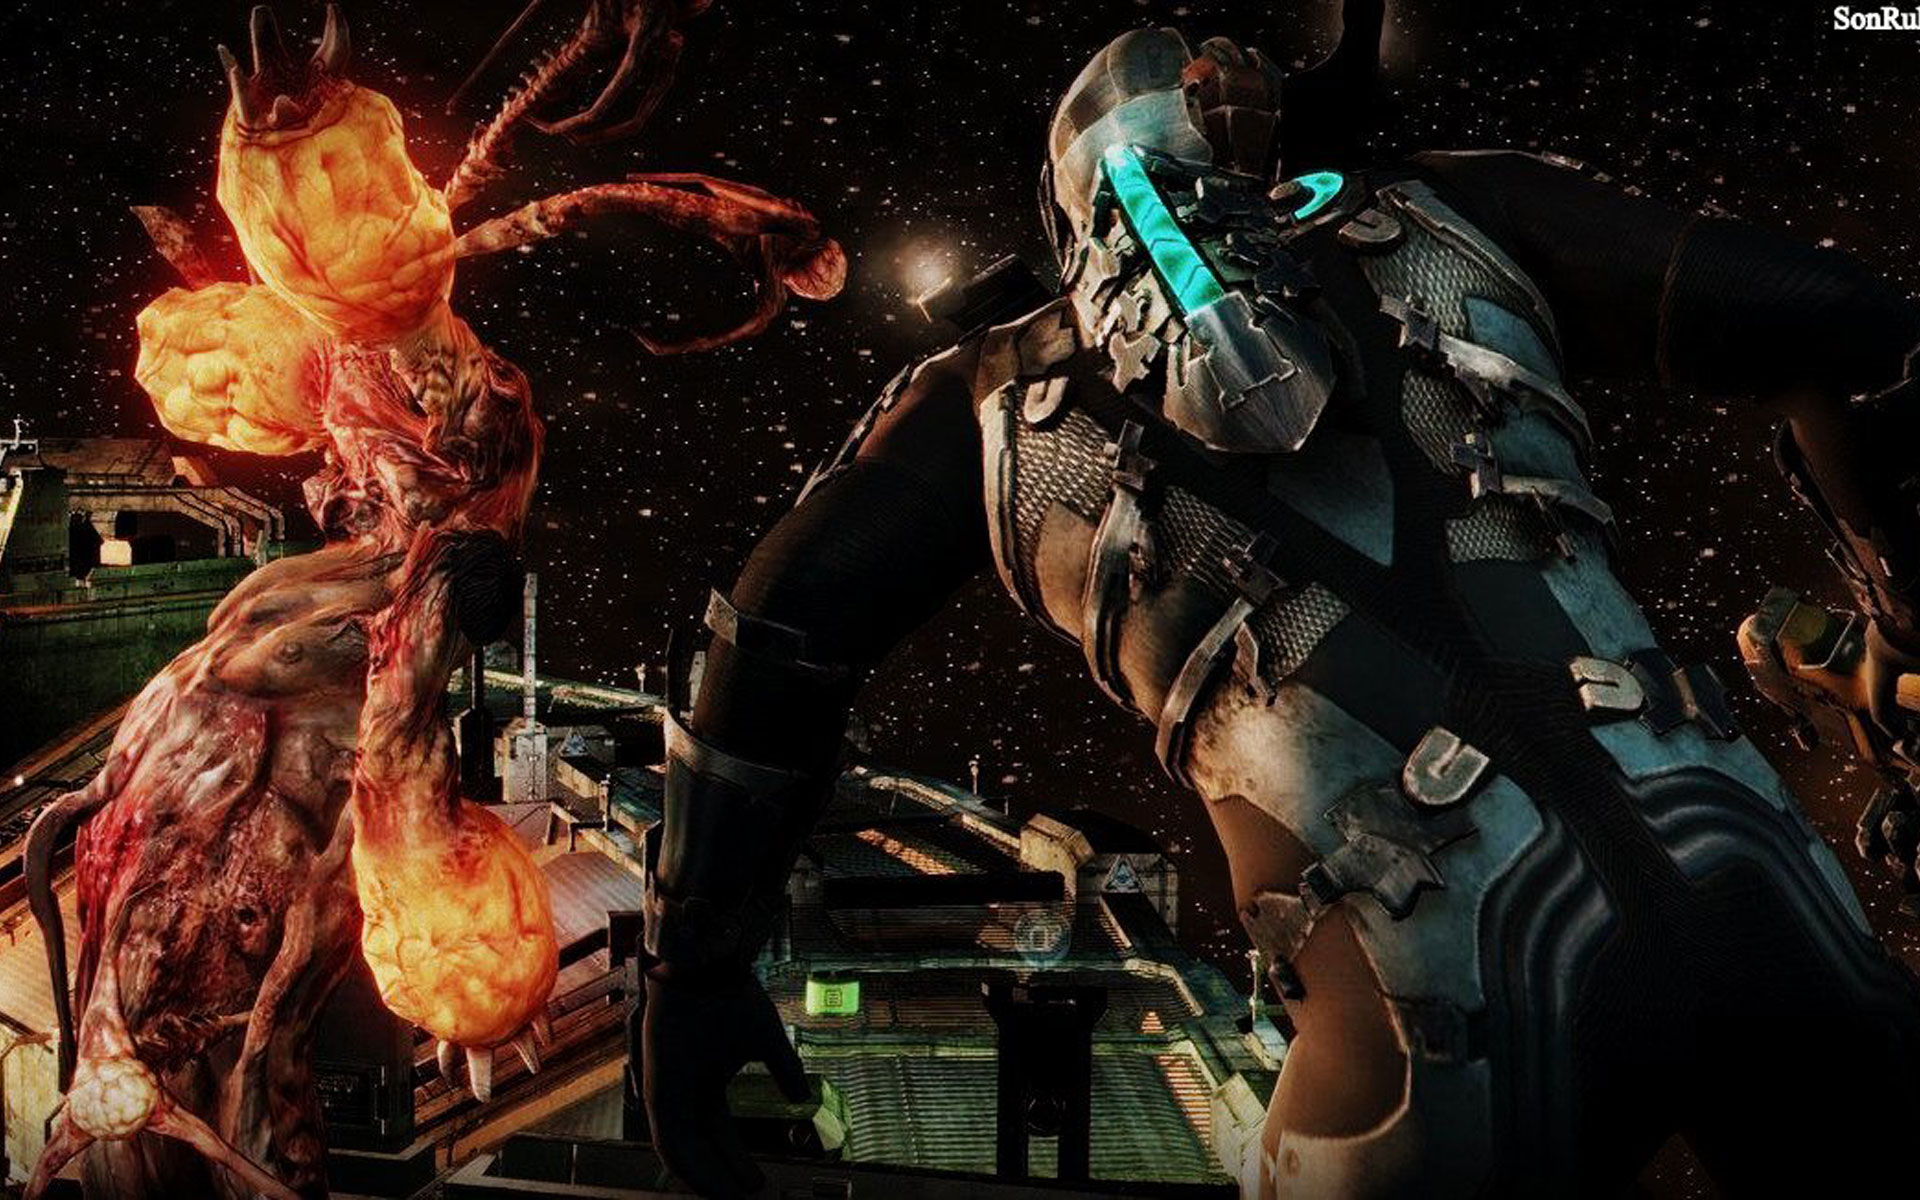 Free Wallpapers - Dead Space 2 Wallpaper